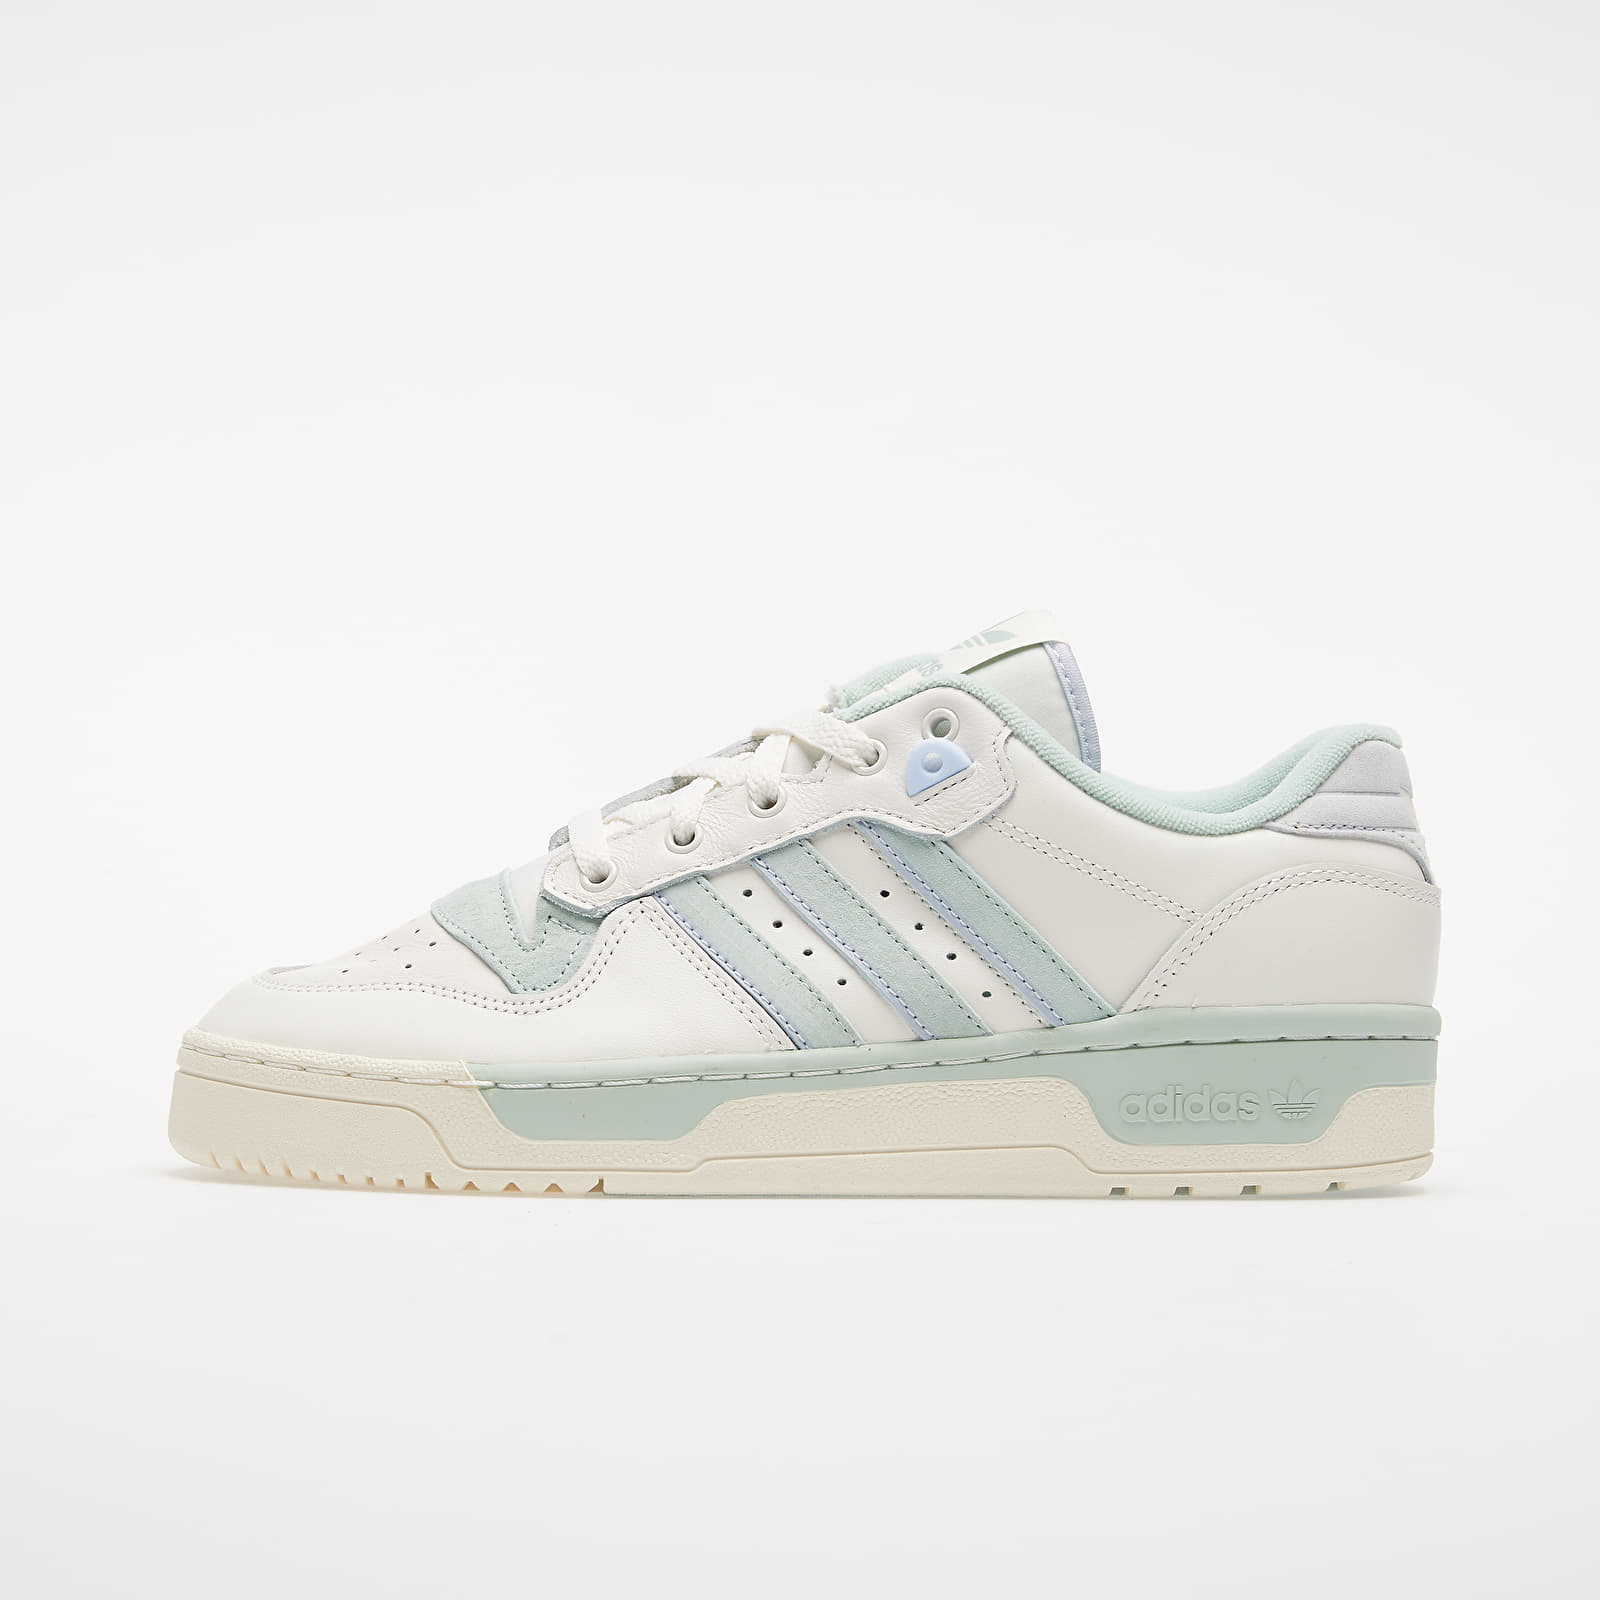 Férfi cipők adidas Rivalry Low Cloud White/ Off White/ Green Tint